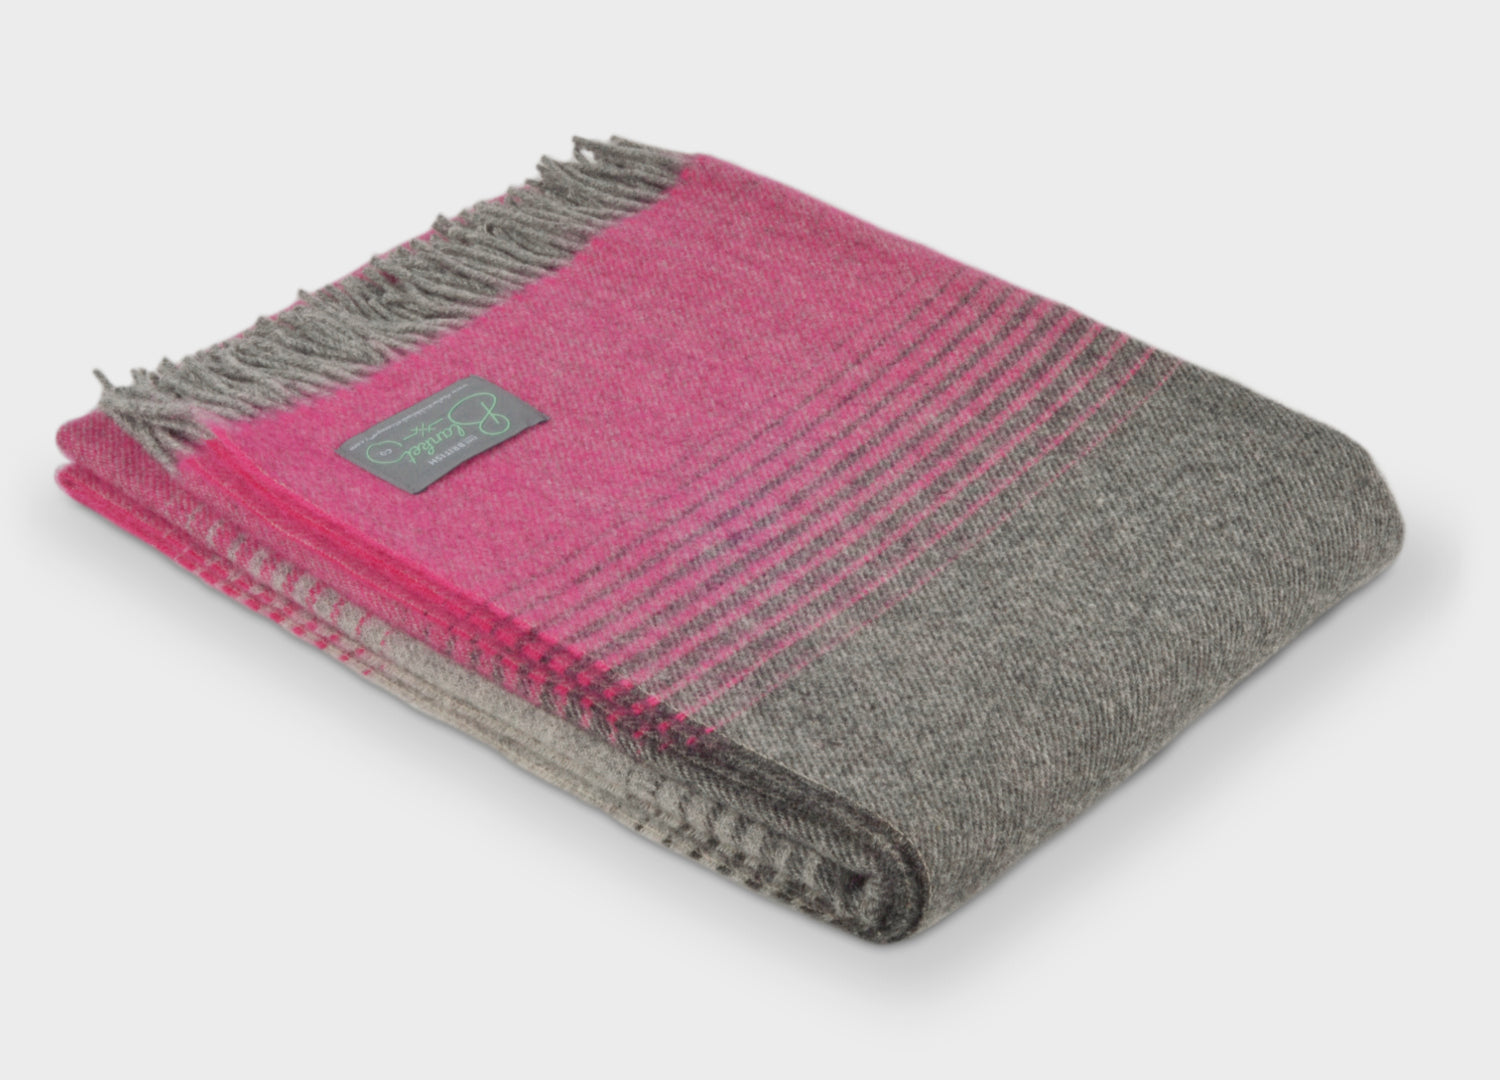 b2c44d535c Pink and Grey Starry Night Throw - buy at The British Blanket Company